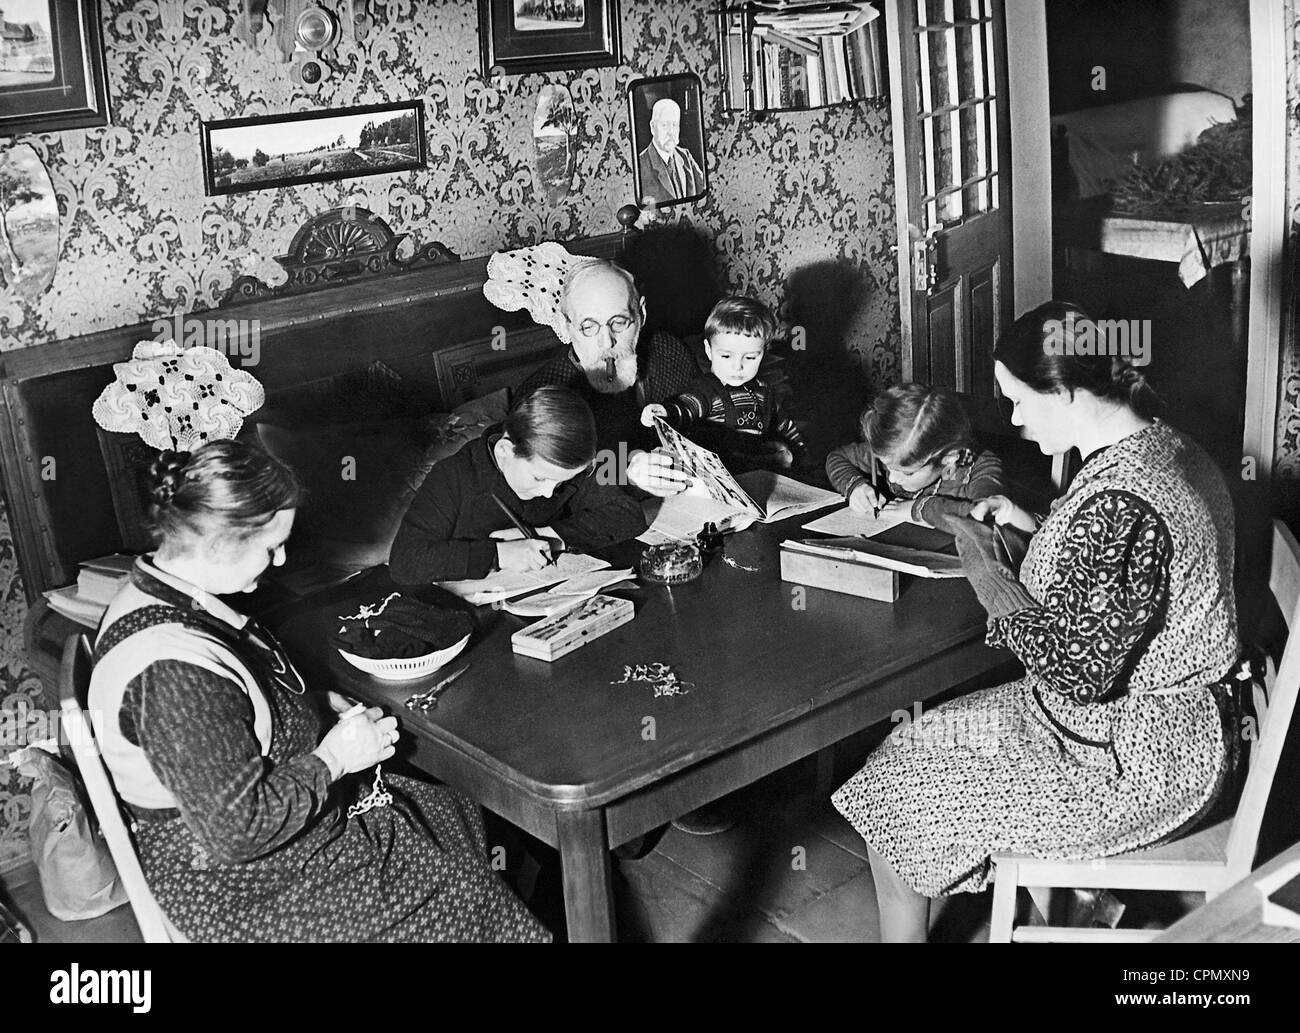 Lower middle class family, 1942 - Stock Image